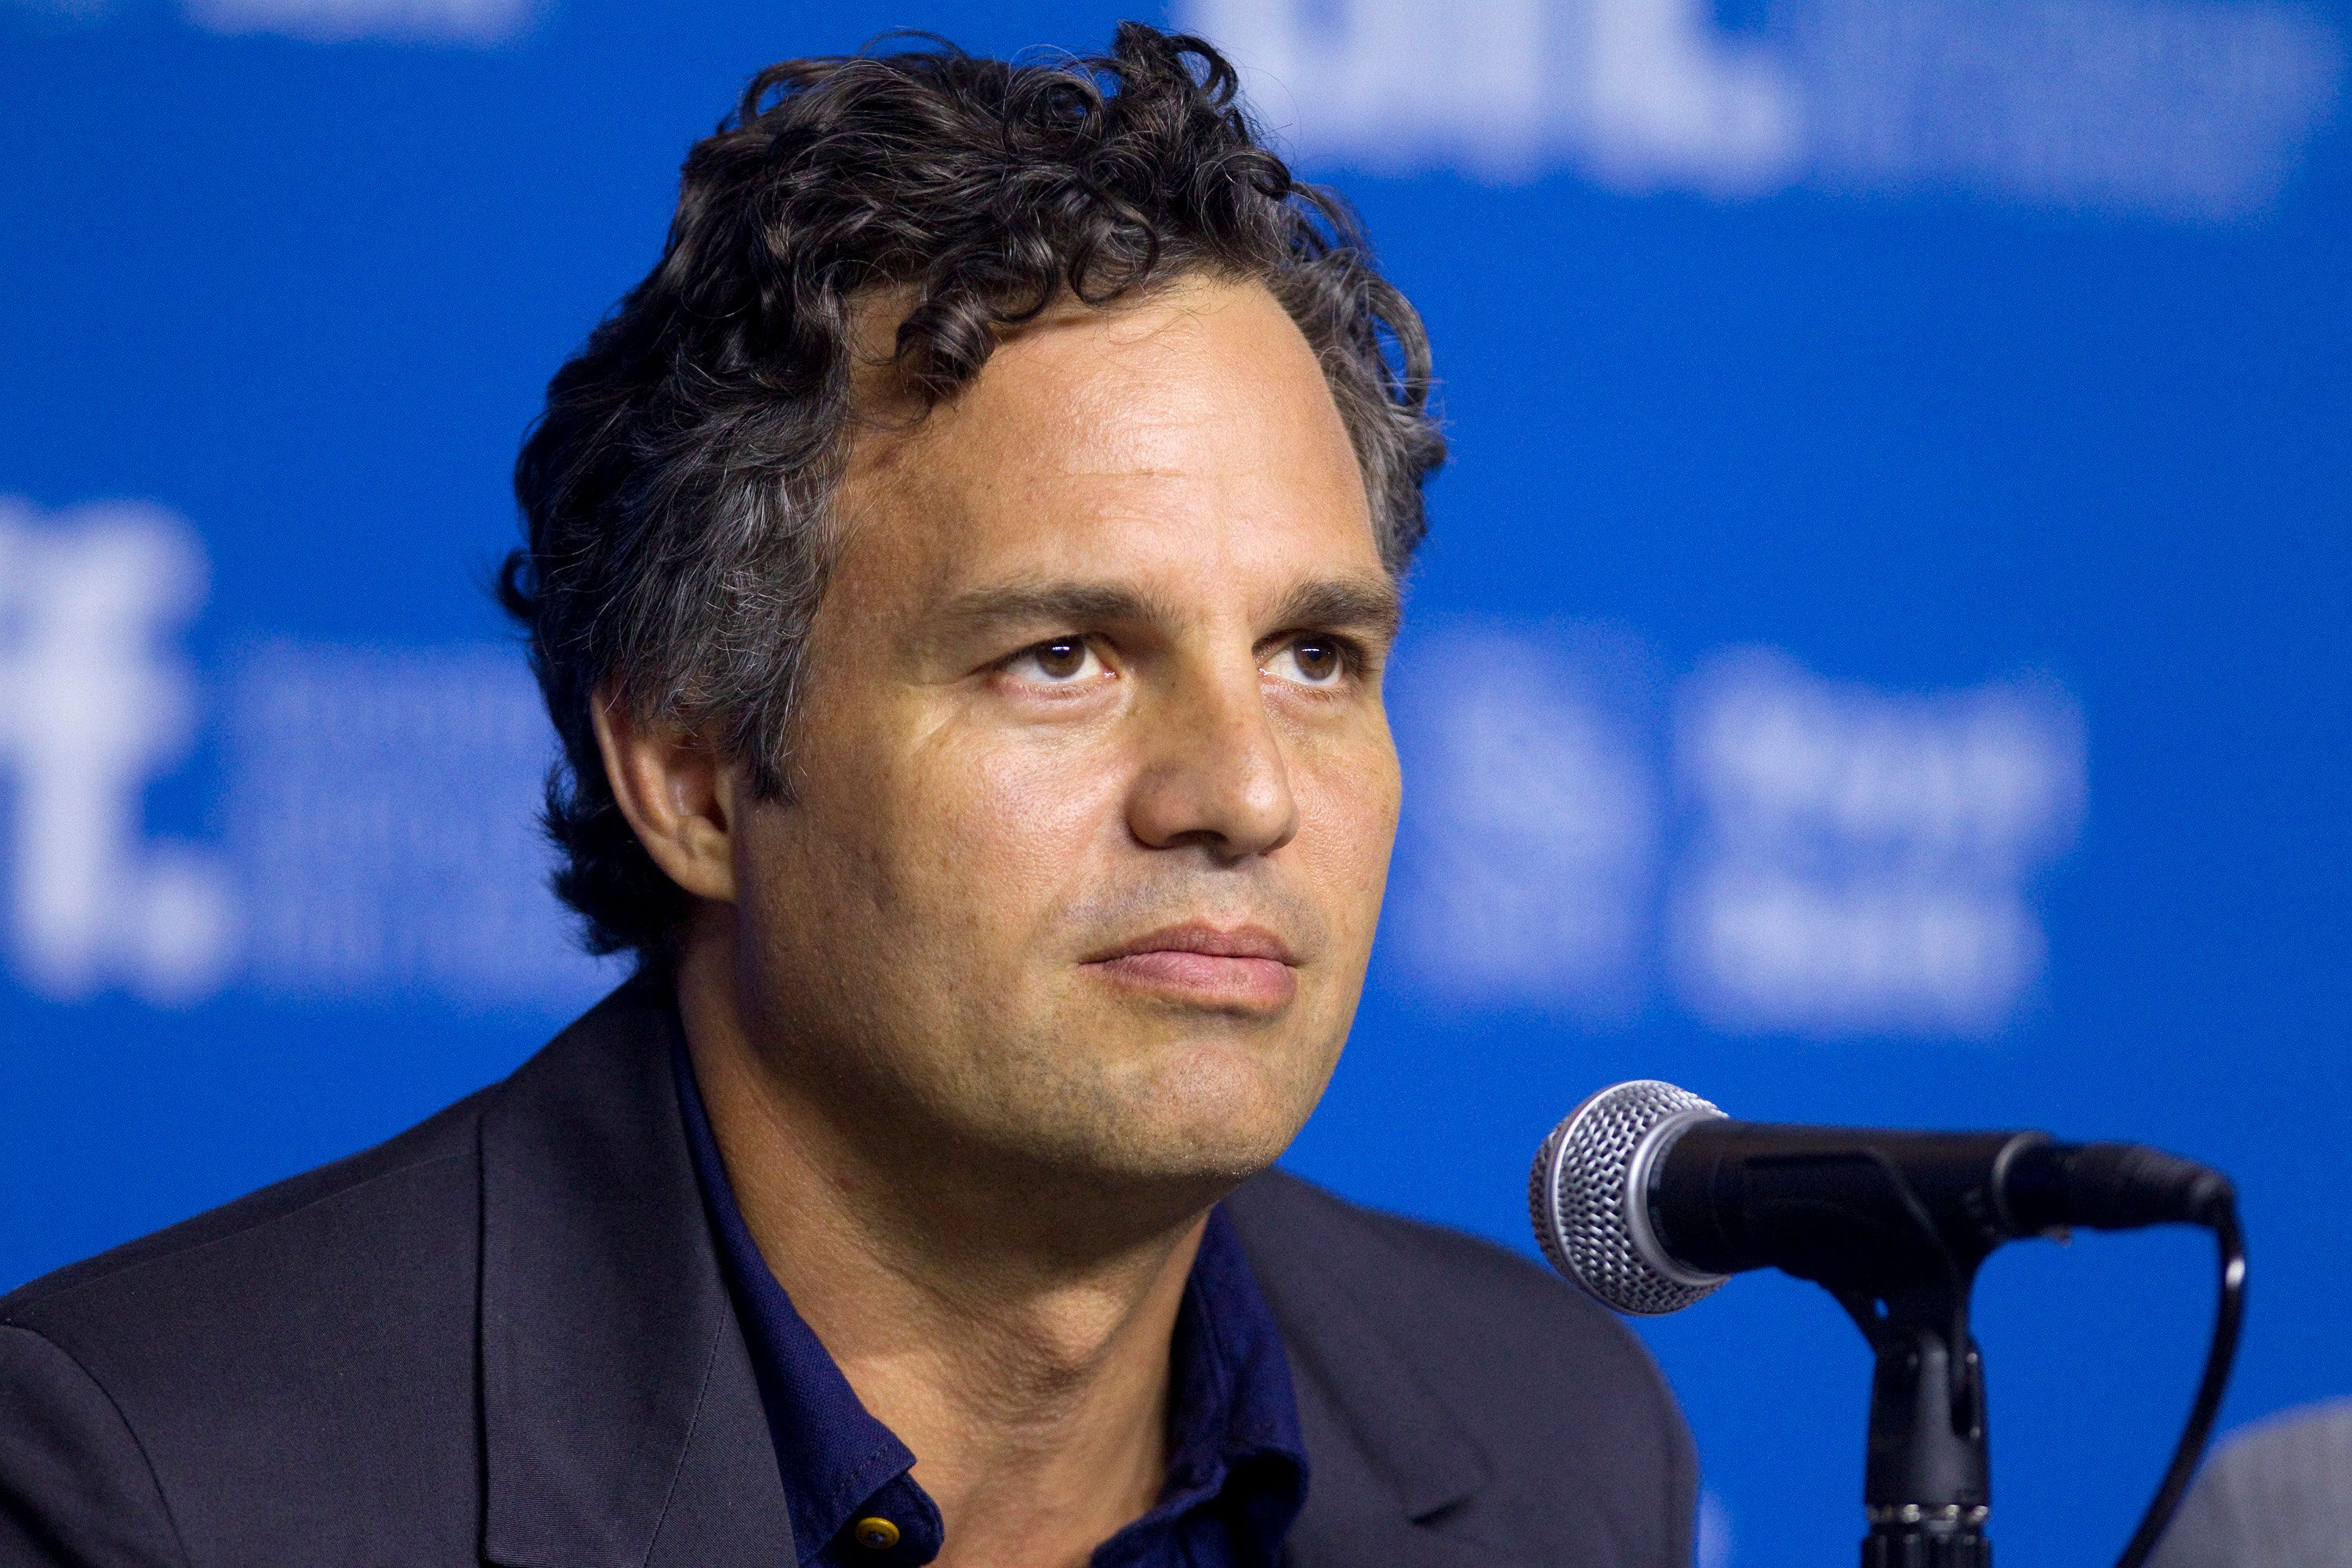 """Actor Mark Ruffalo attends a news conference to promote the film """"Foxcatcher"""" at the Toronto International Film Festival (TIFF) in Toronto, September 8, 2014.    REUTERS/Fred Thornhill (CANADA - Tags: ENTERTAINMENT)"""